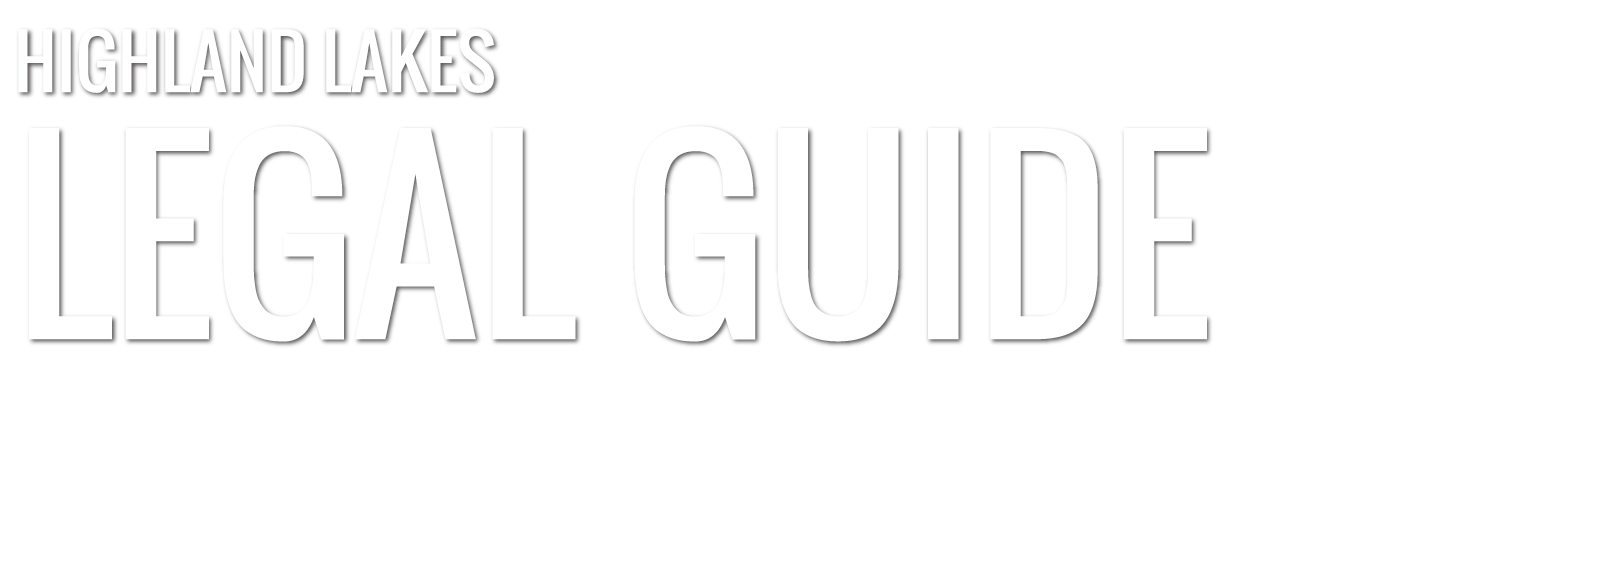 Highland Lakes Legal Guide